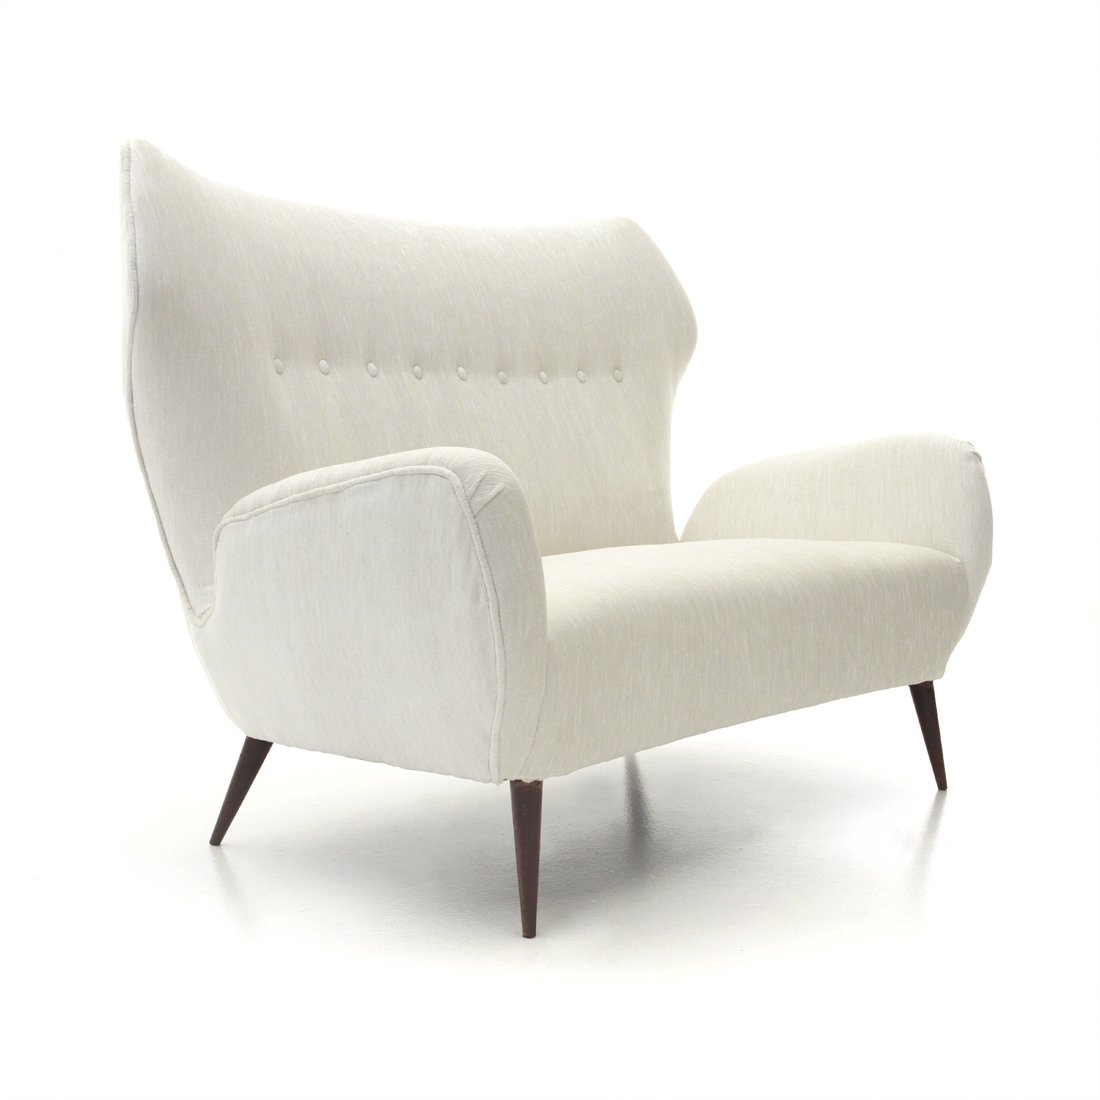 Italian mid century modern two seater sofa in white velvet 1940s